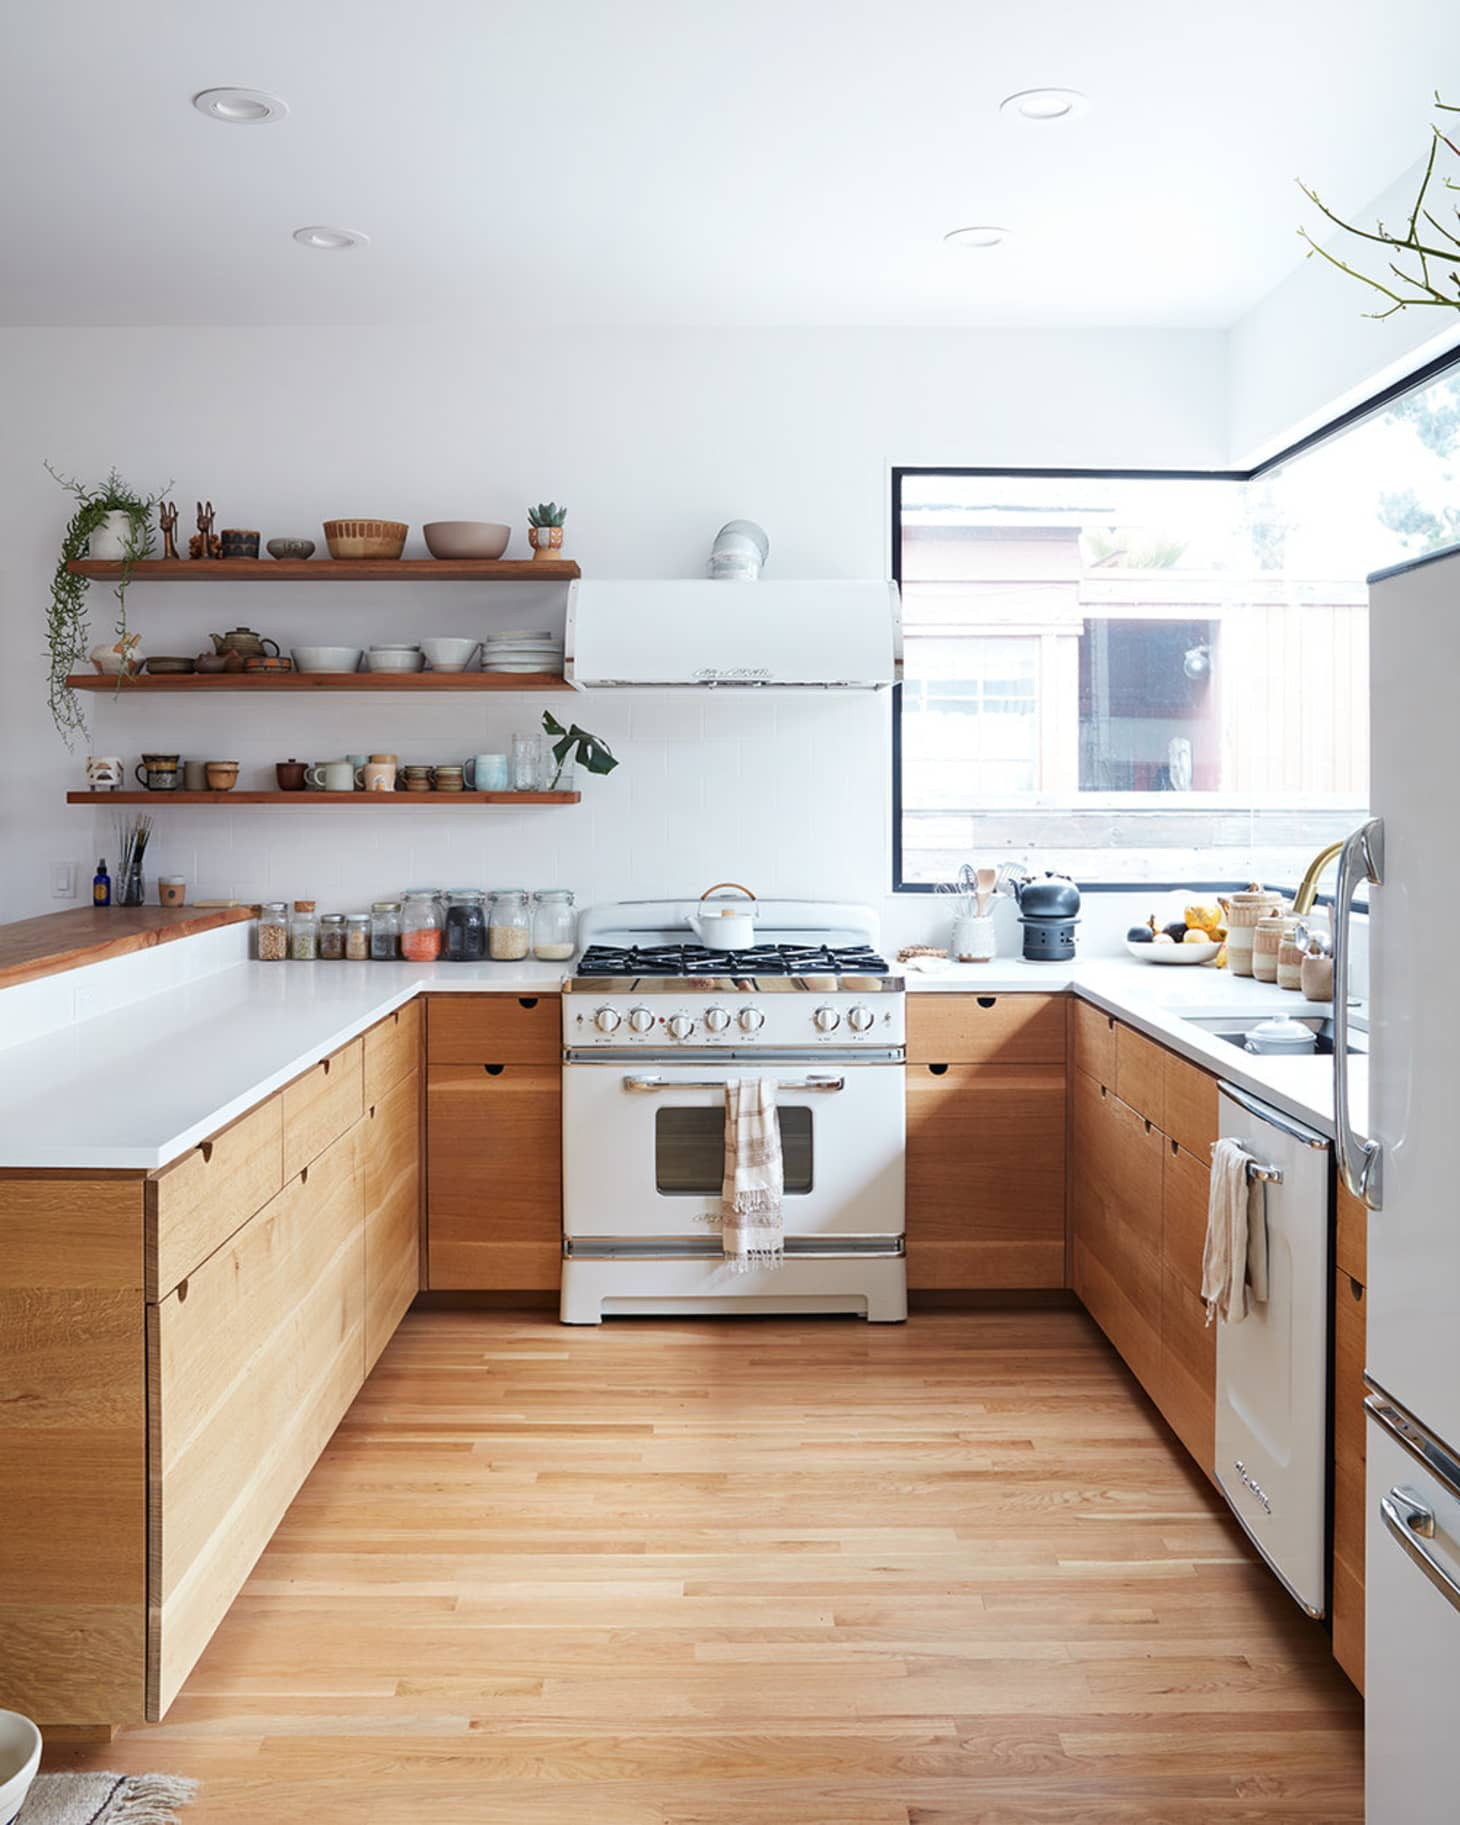 Kitchens With No Upper Cabinets: Kitchens Without Upper Cabinets: Should You Go Without